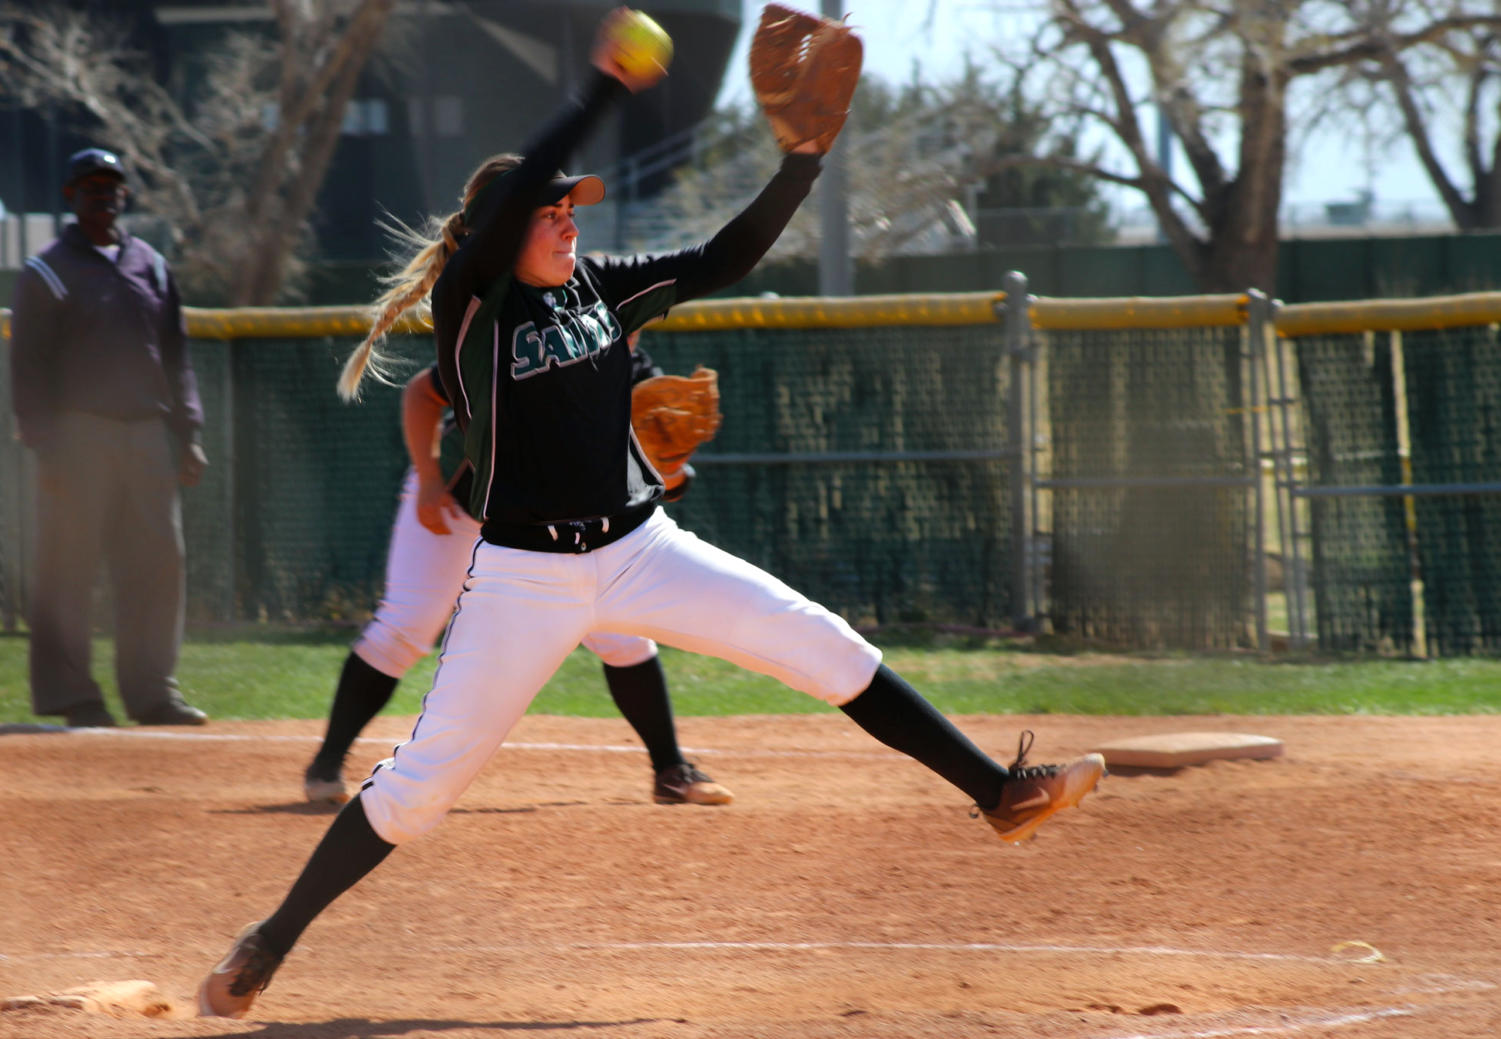 Jordan+Cordrey%2C+freshman+from+Colorado+Springs%2C+Colorado%2C+pitched+for+the+second+game+against+the+Barton+Cougars.++The+Saints+Softball+team+won+the+second+game+17-6.